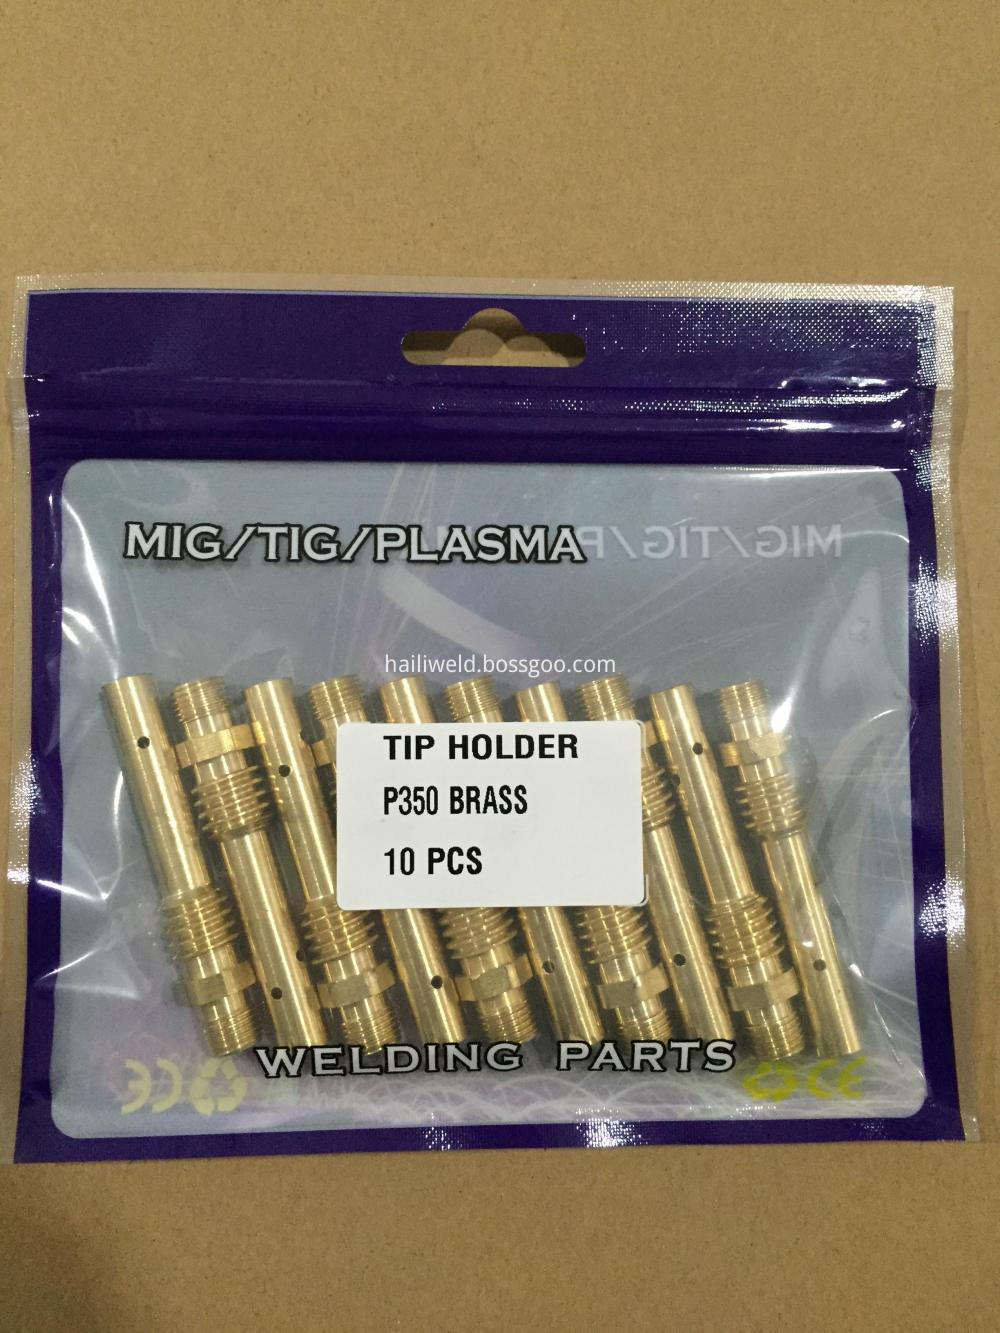 Tip Holder P350a Brass